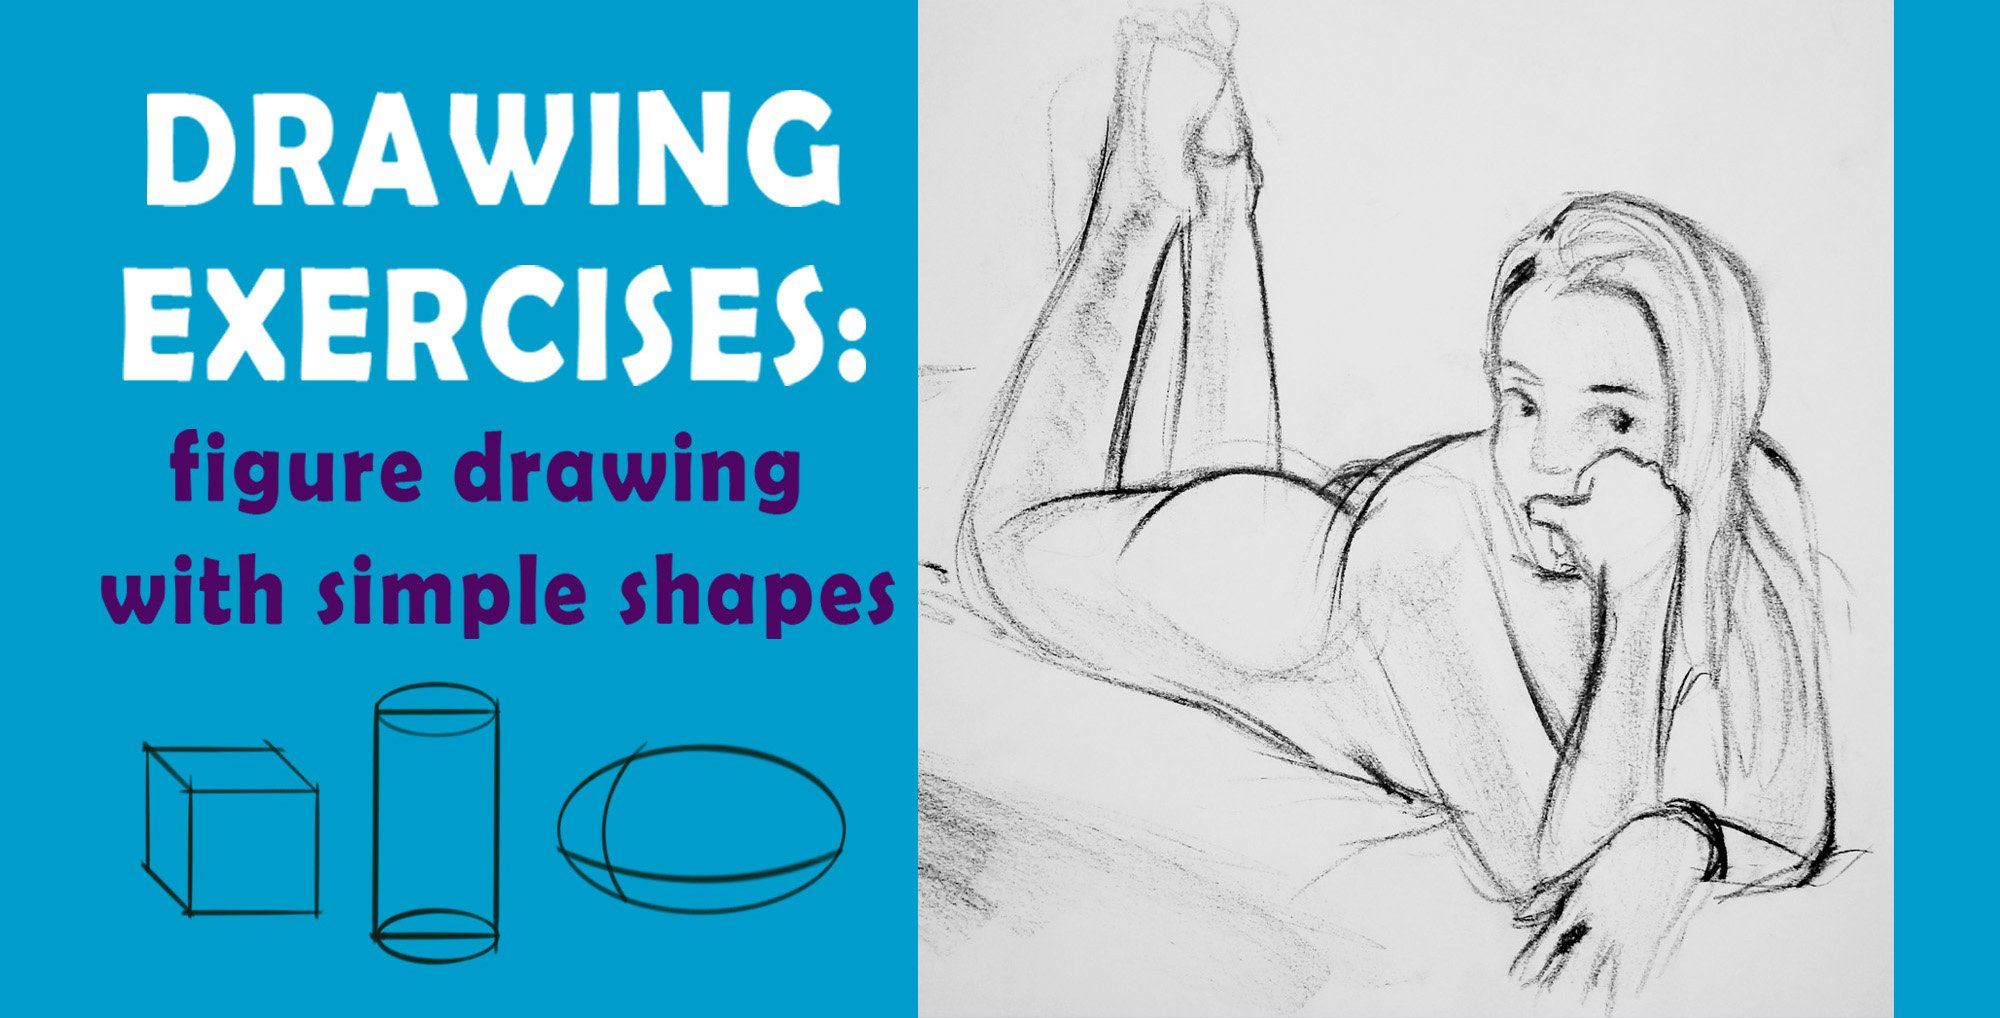 Drawing exercises: figure drawing with simple shapes